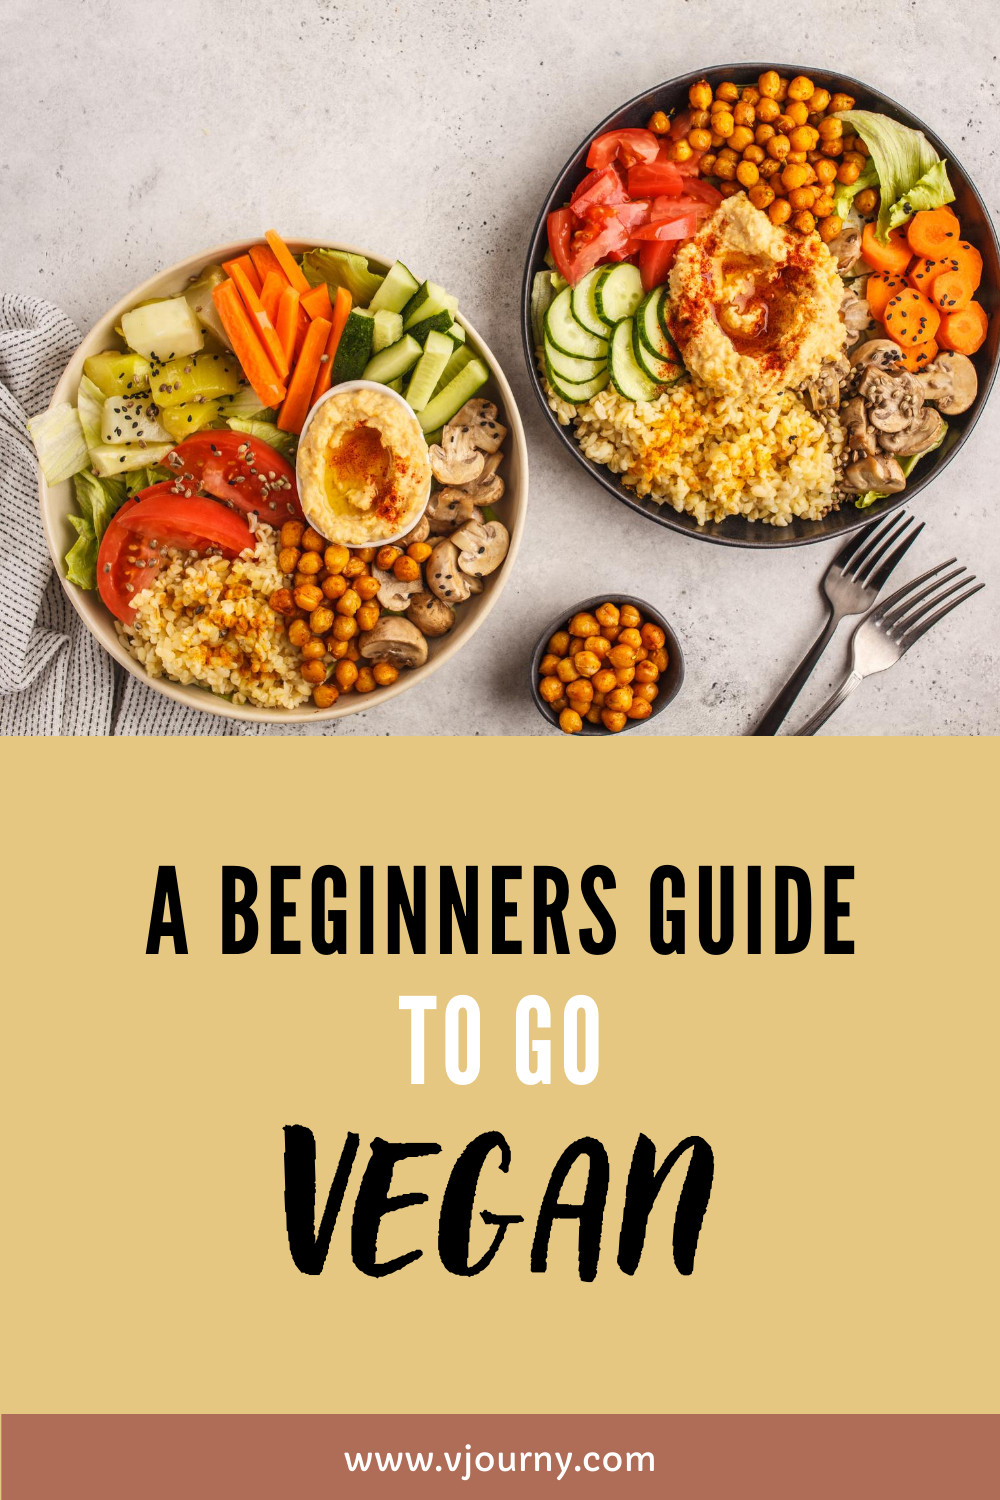 Going Vegan Plan  A Beginners Guide on How to Go Vegan easy steps in 2020